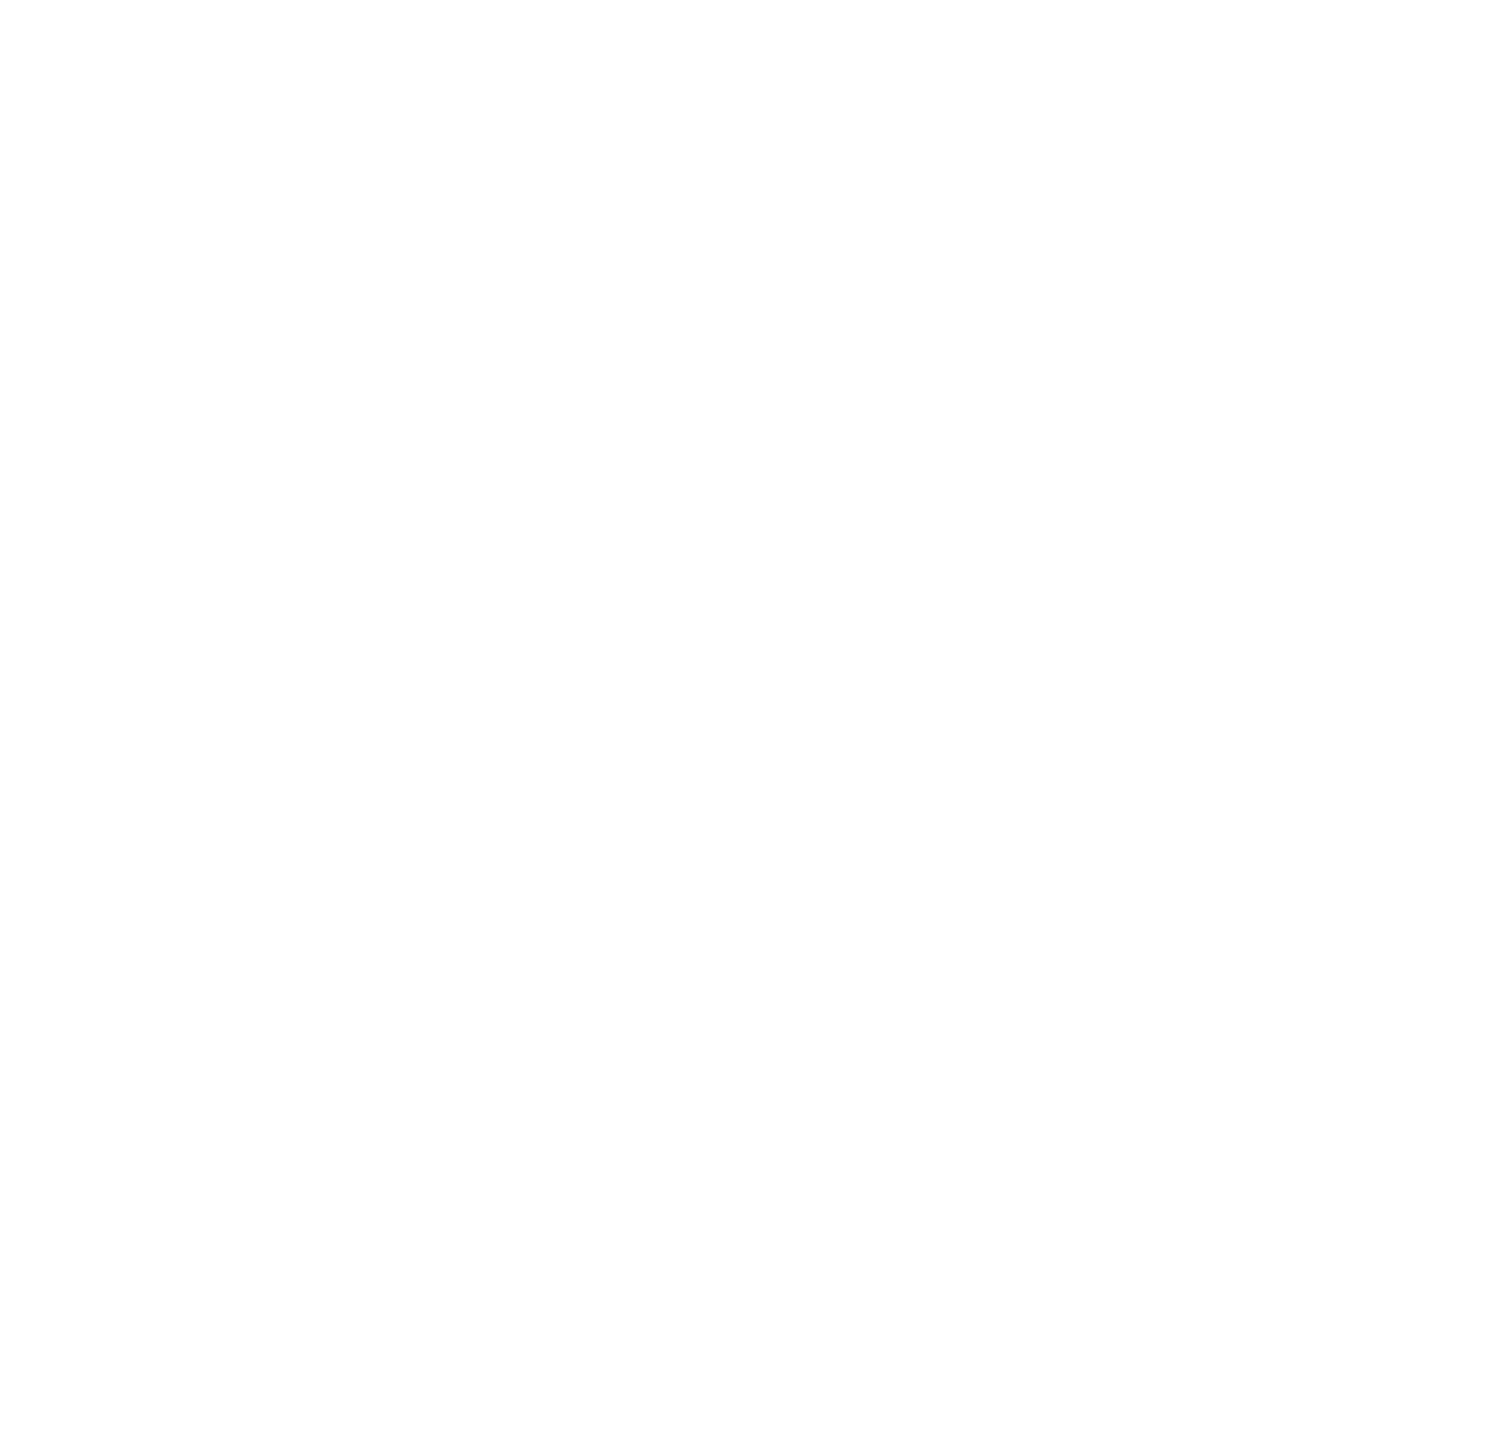 ROWAN FLY FISHING